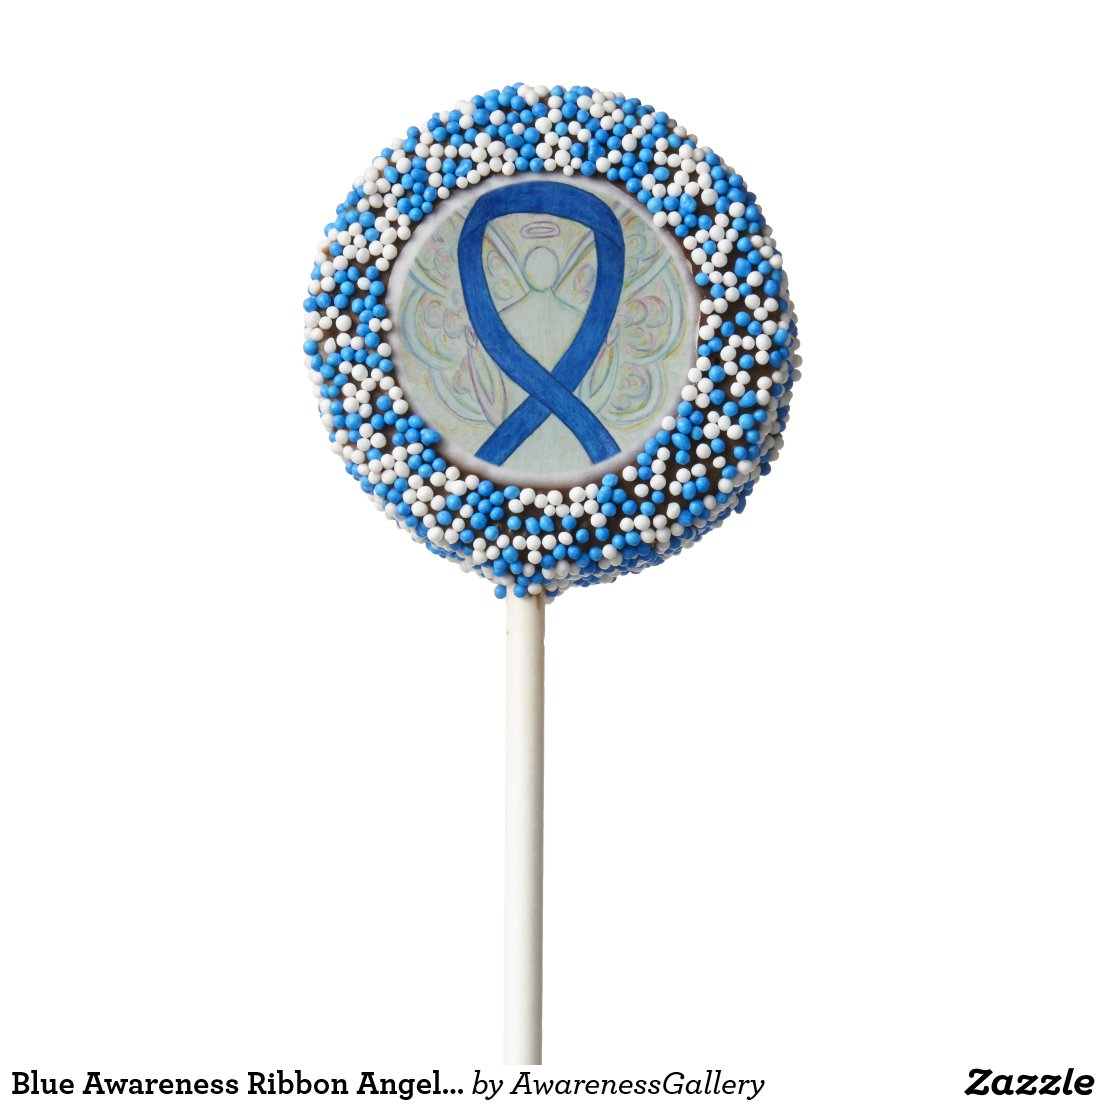 Blue Awareness Ribbon Angel Oreo Cookie Pops